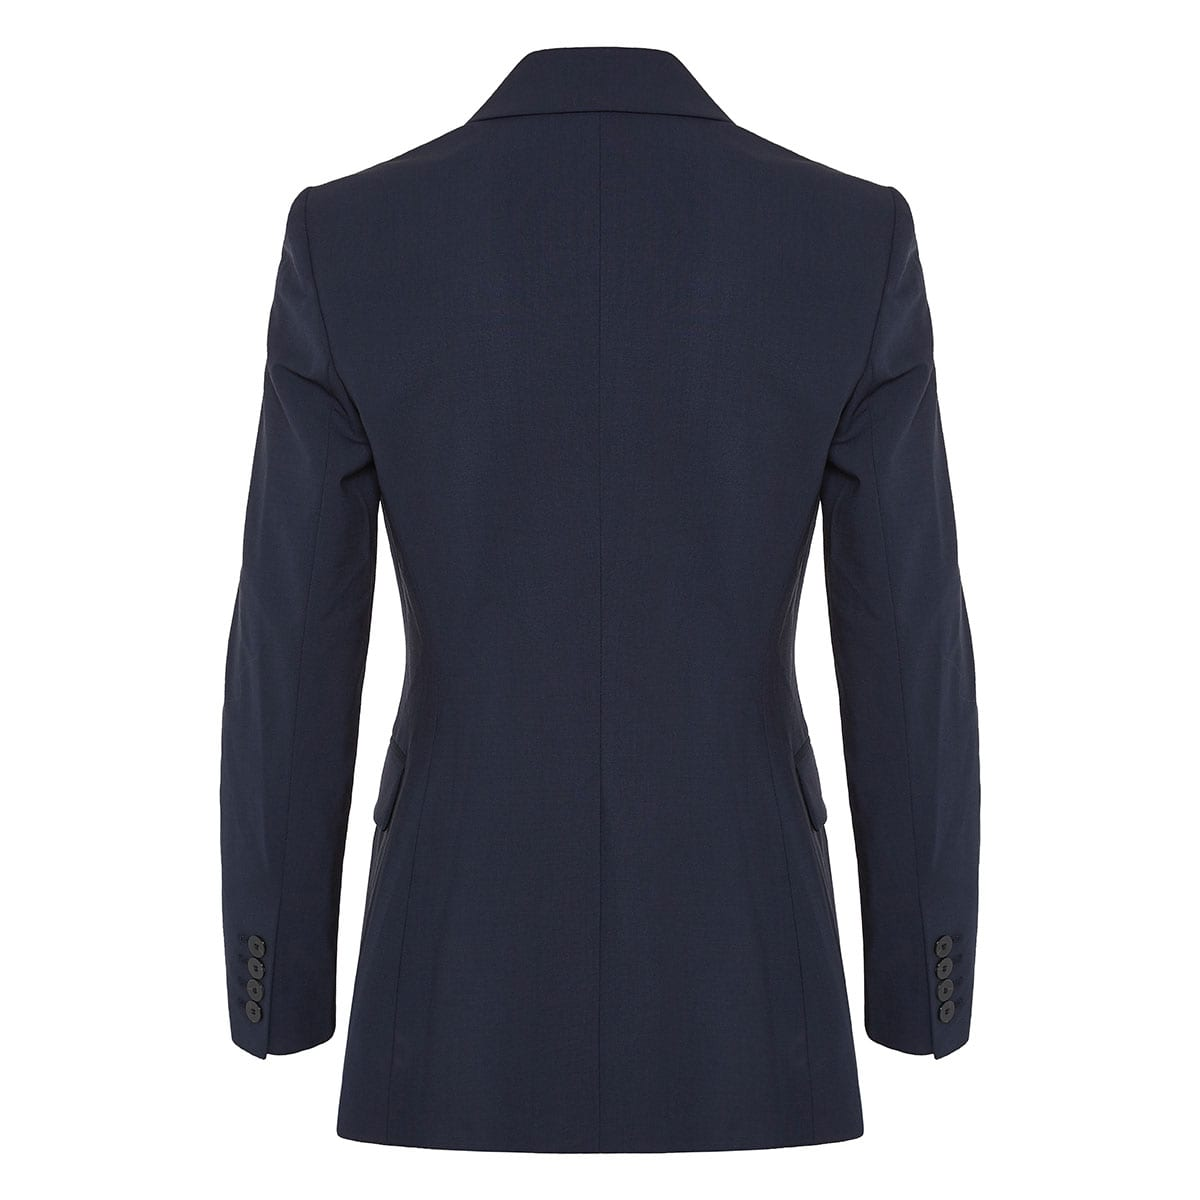 Etiennette single-breasted blazer